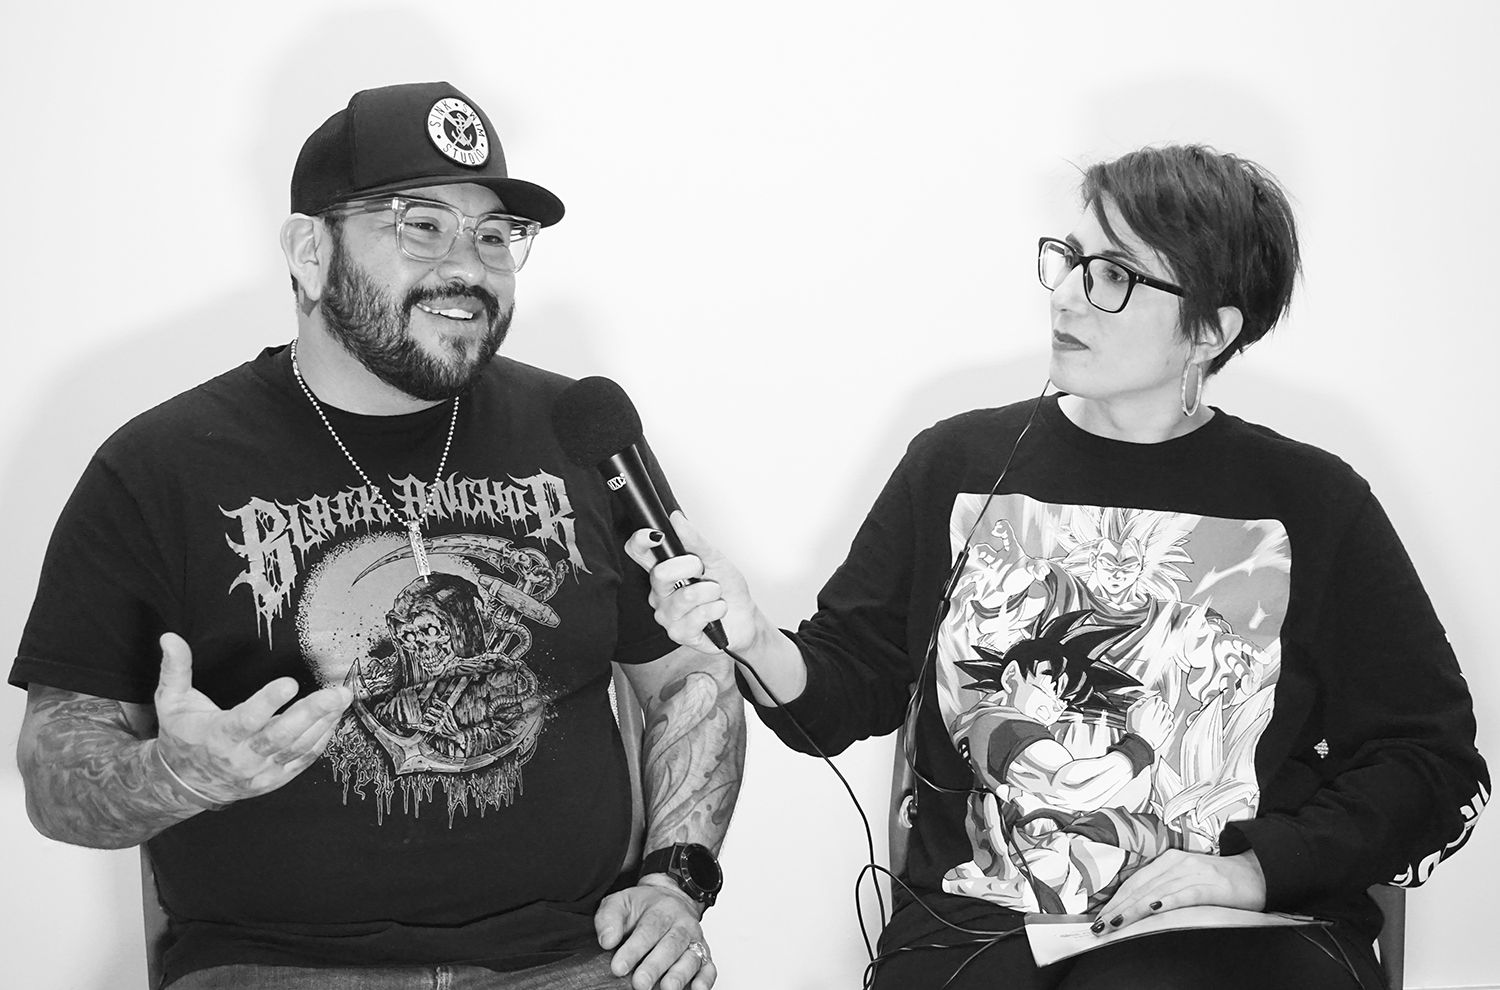 tattoo artist nikko hurtado interview, scene360 conducts it